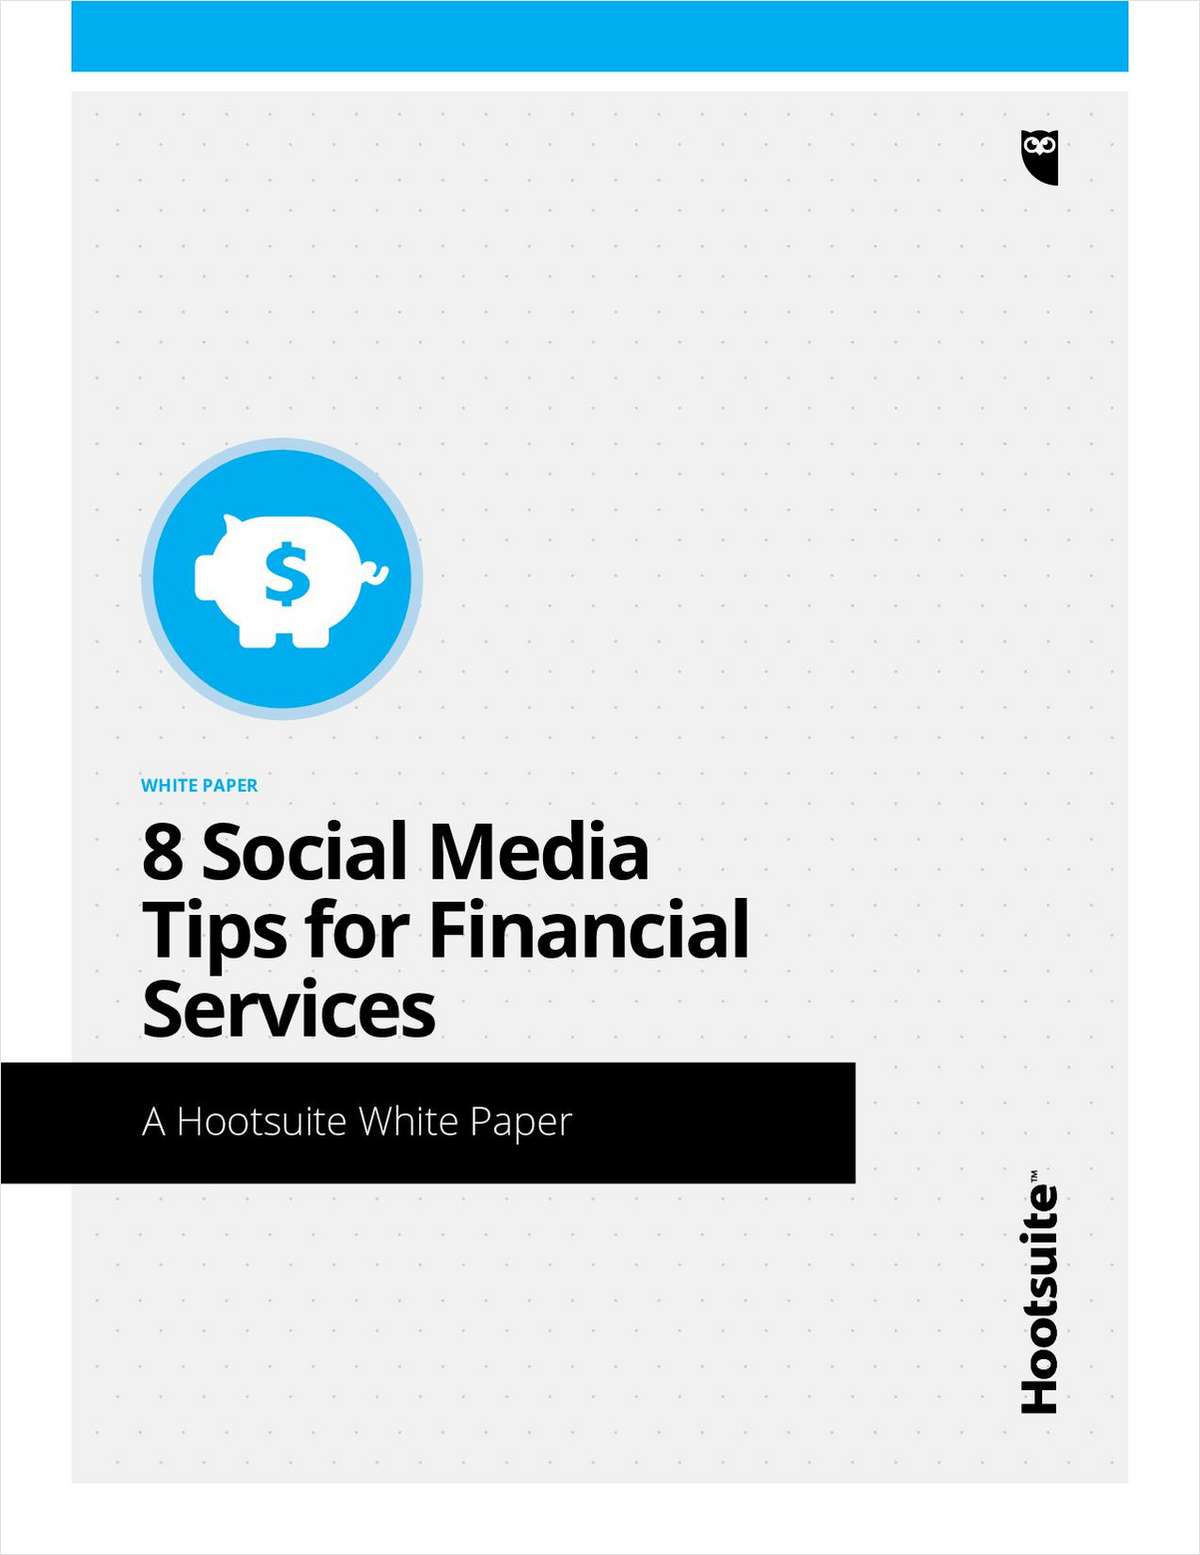 8 Social Media Tips for Financial Services